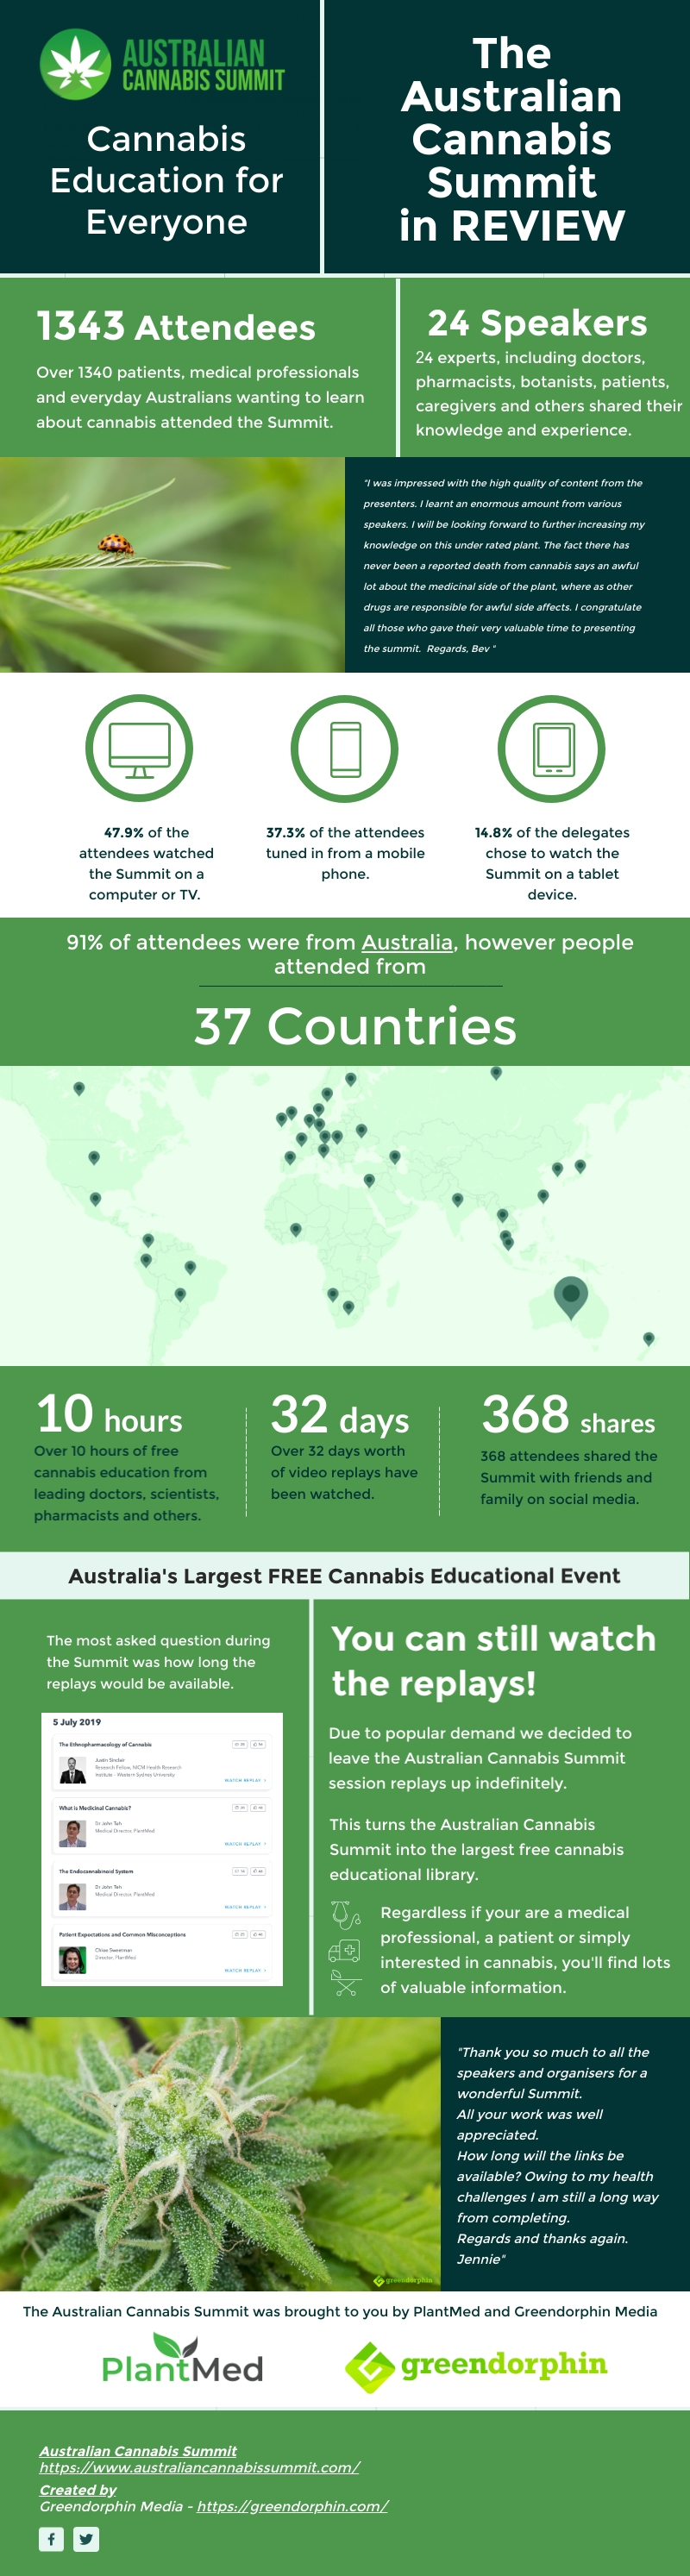 Australian Cannabis Summit in Review